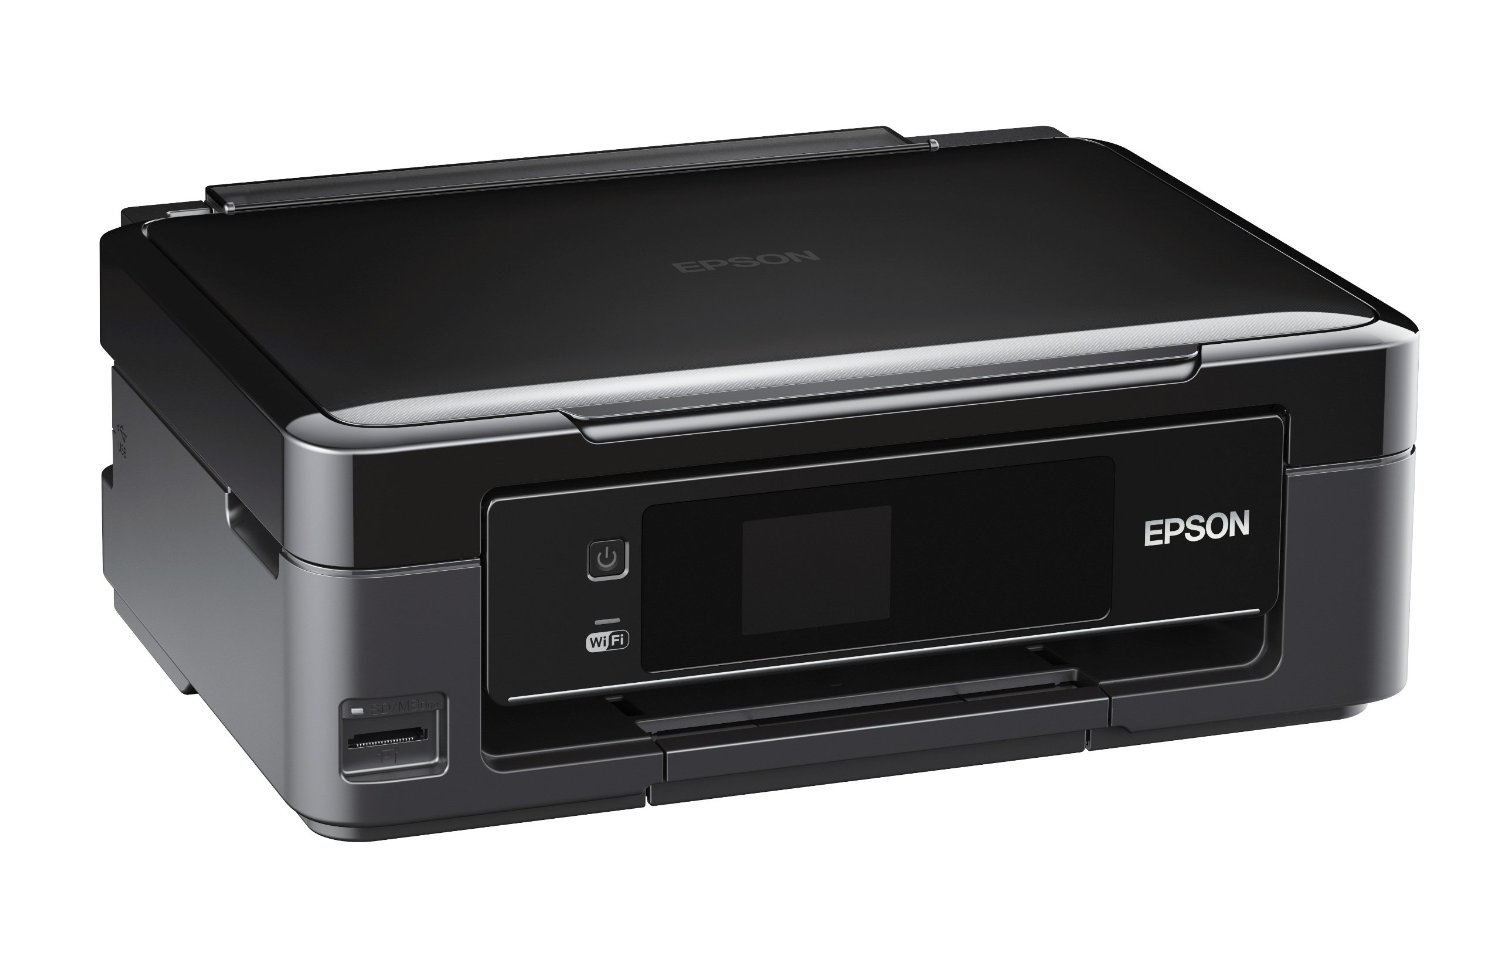 Epson XP Expression Home XP405 (C)   NEW Printer Reset